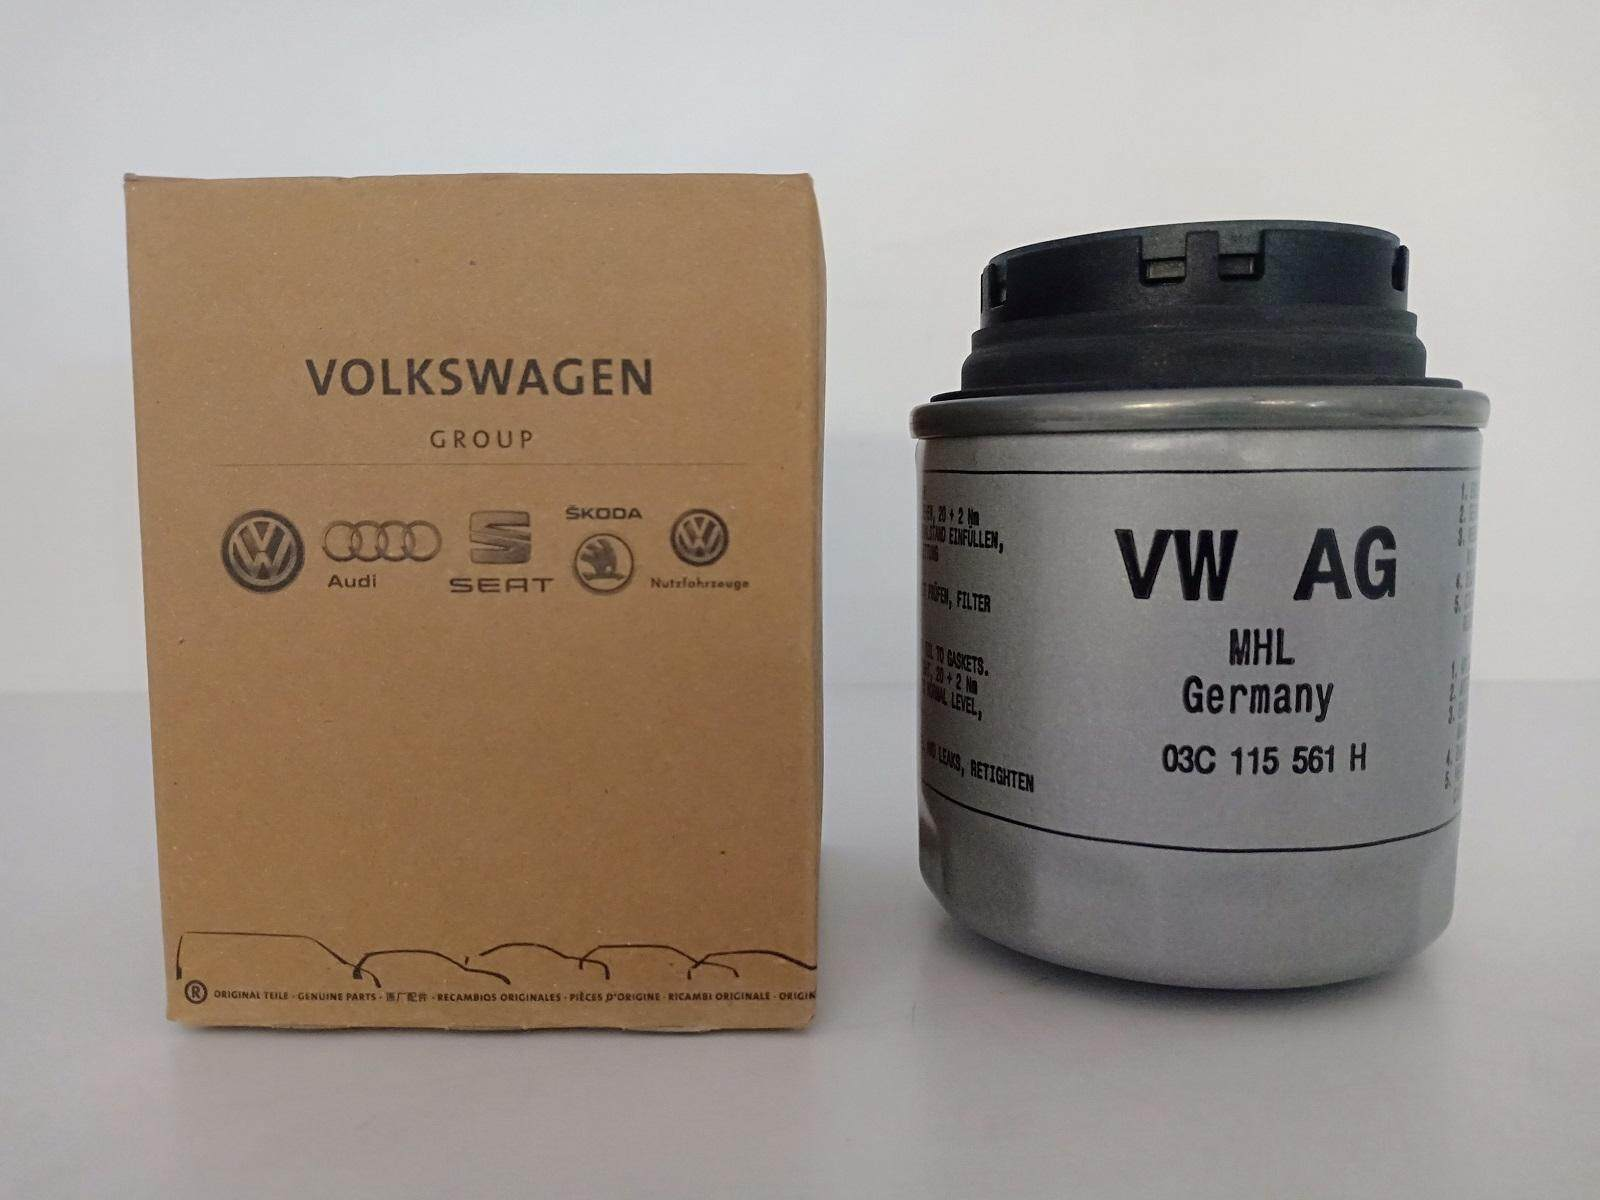 Genuine Oil Filter For Vw Golf Jetta Beetle Tiguan Touran Scirocco Polo 14 Tsi Vento 16 03c115561h 2009 Volkswagen Fuse Box Cover